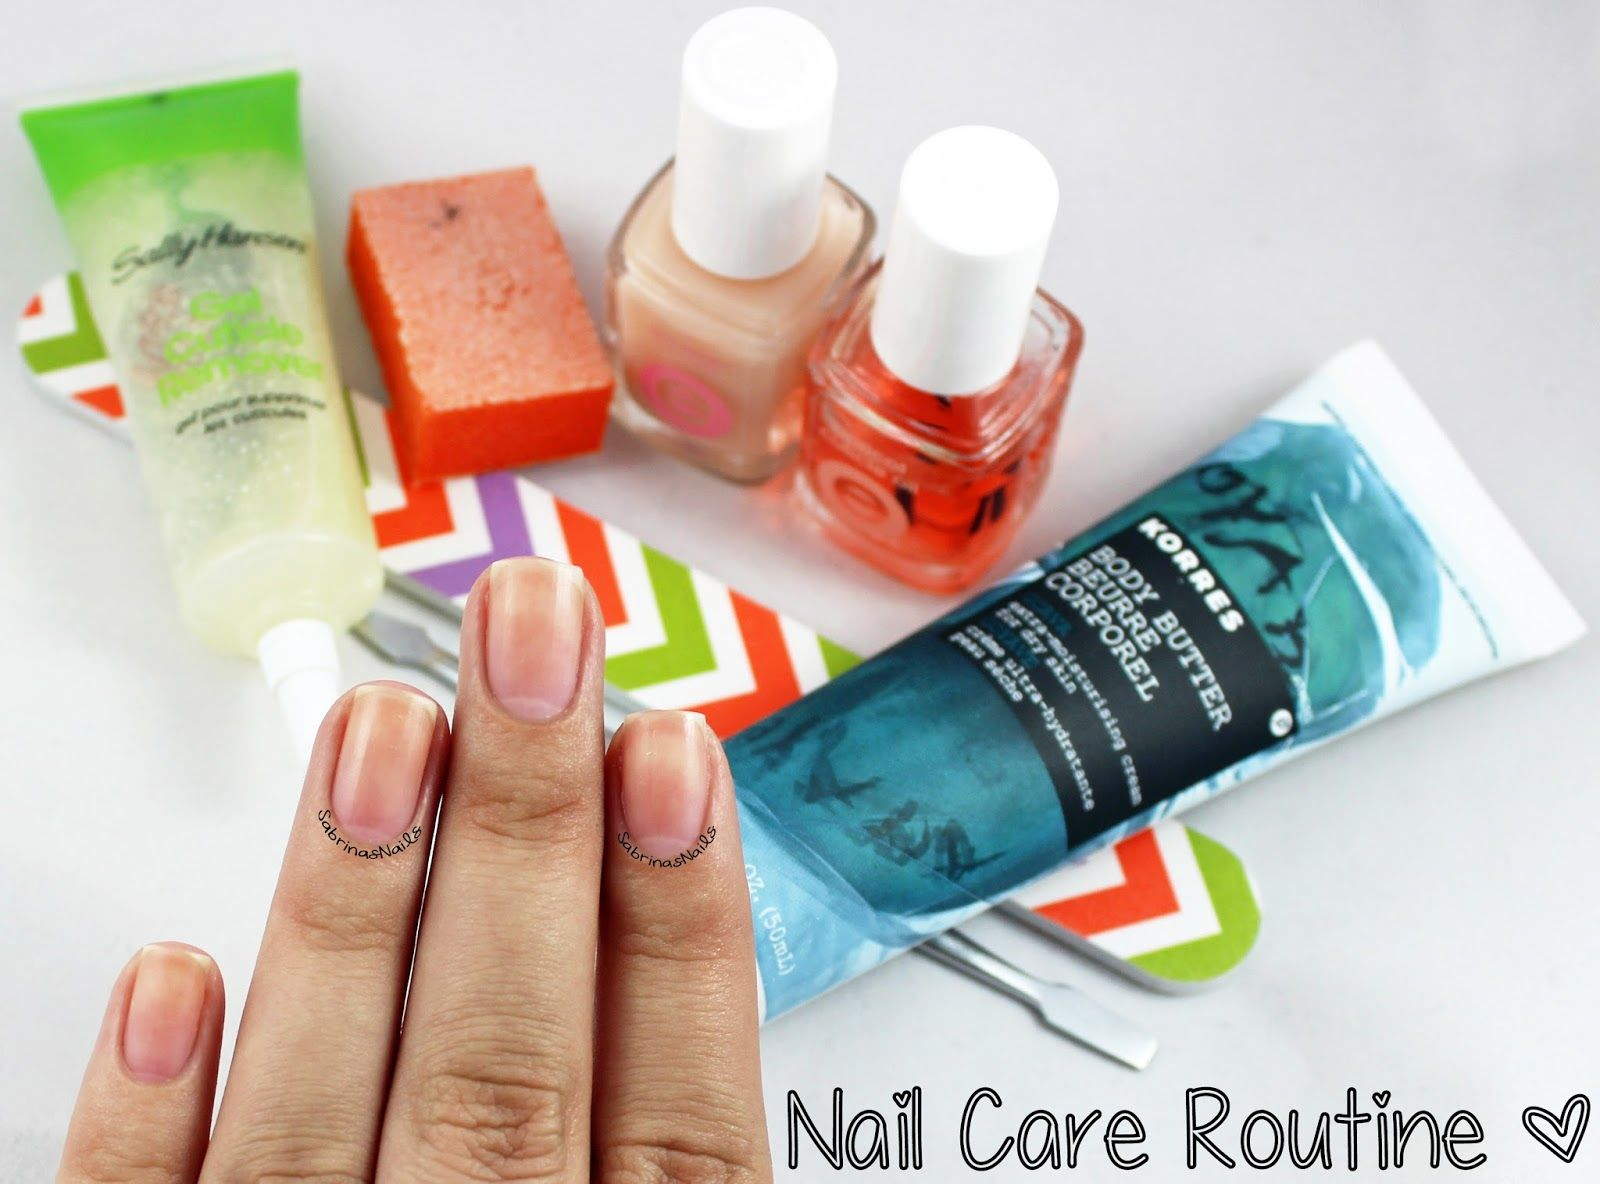 Nail Care Routine   Nails   Pinterest   Nail care and Routine